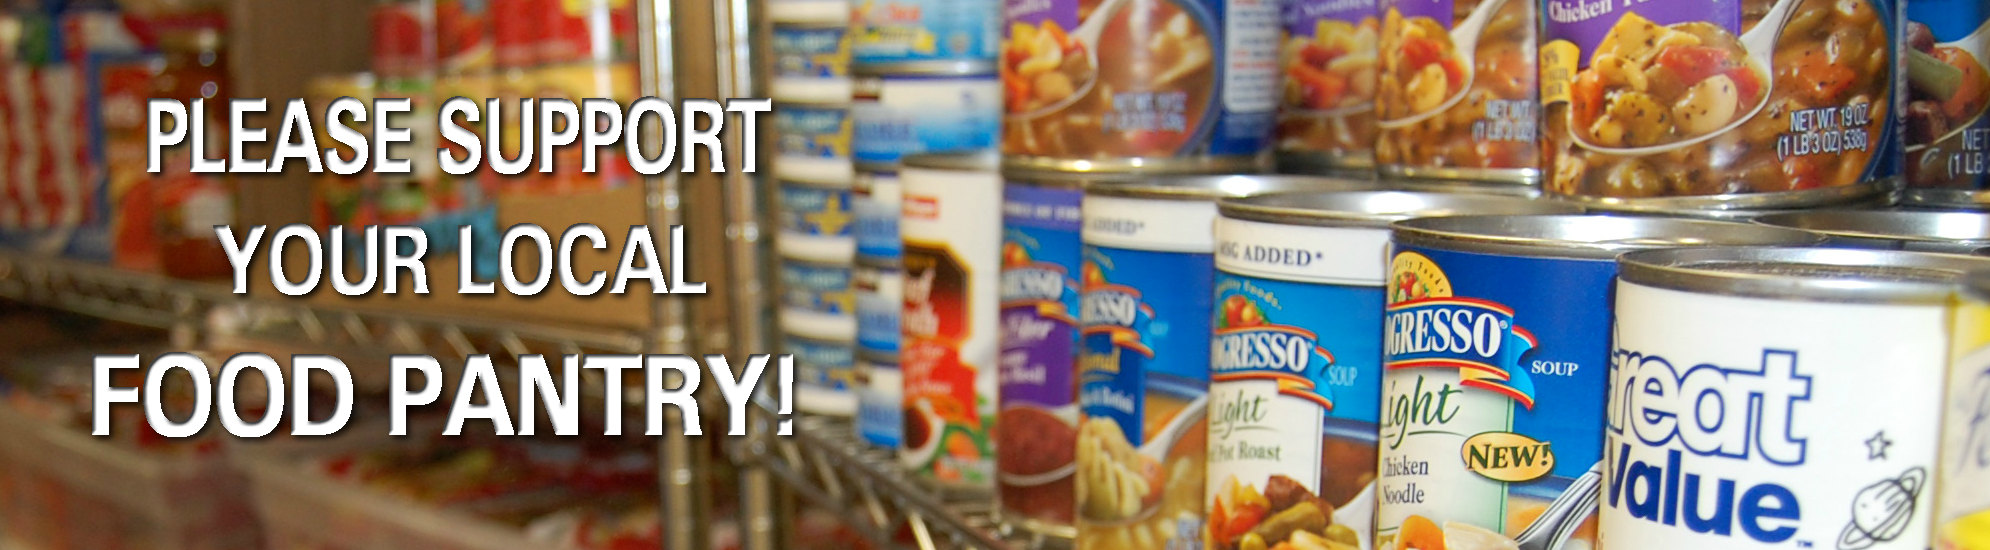 Churches With Food Pantry In Berks